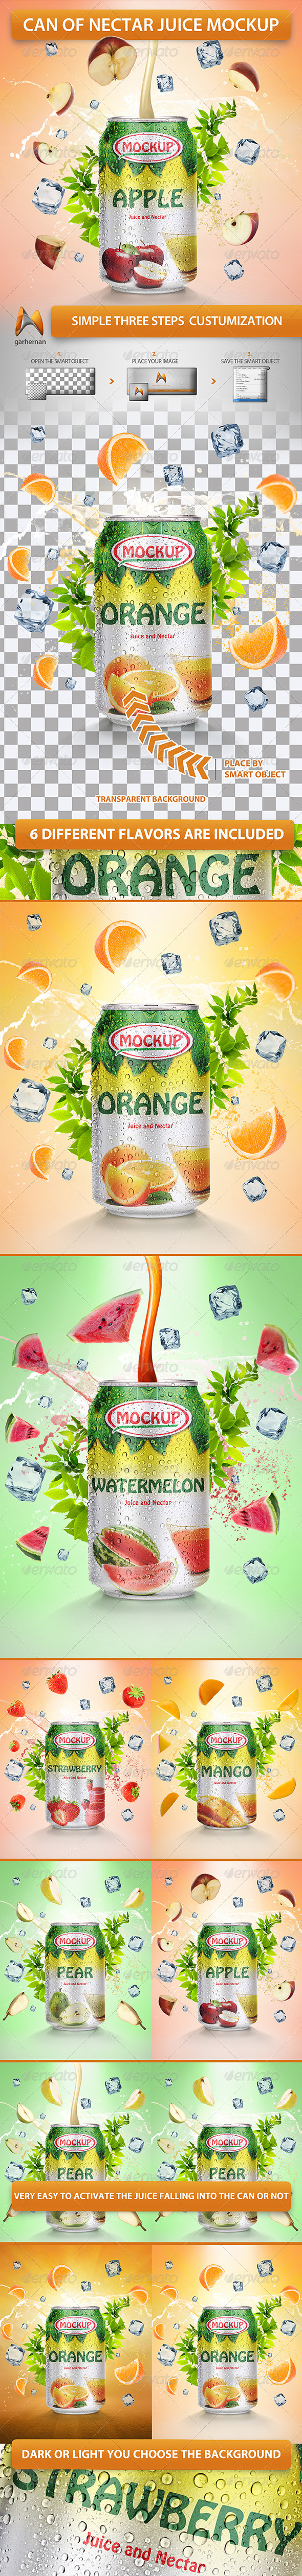 GraphicRiver Can of Nectar Juice Mockup 5672773